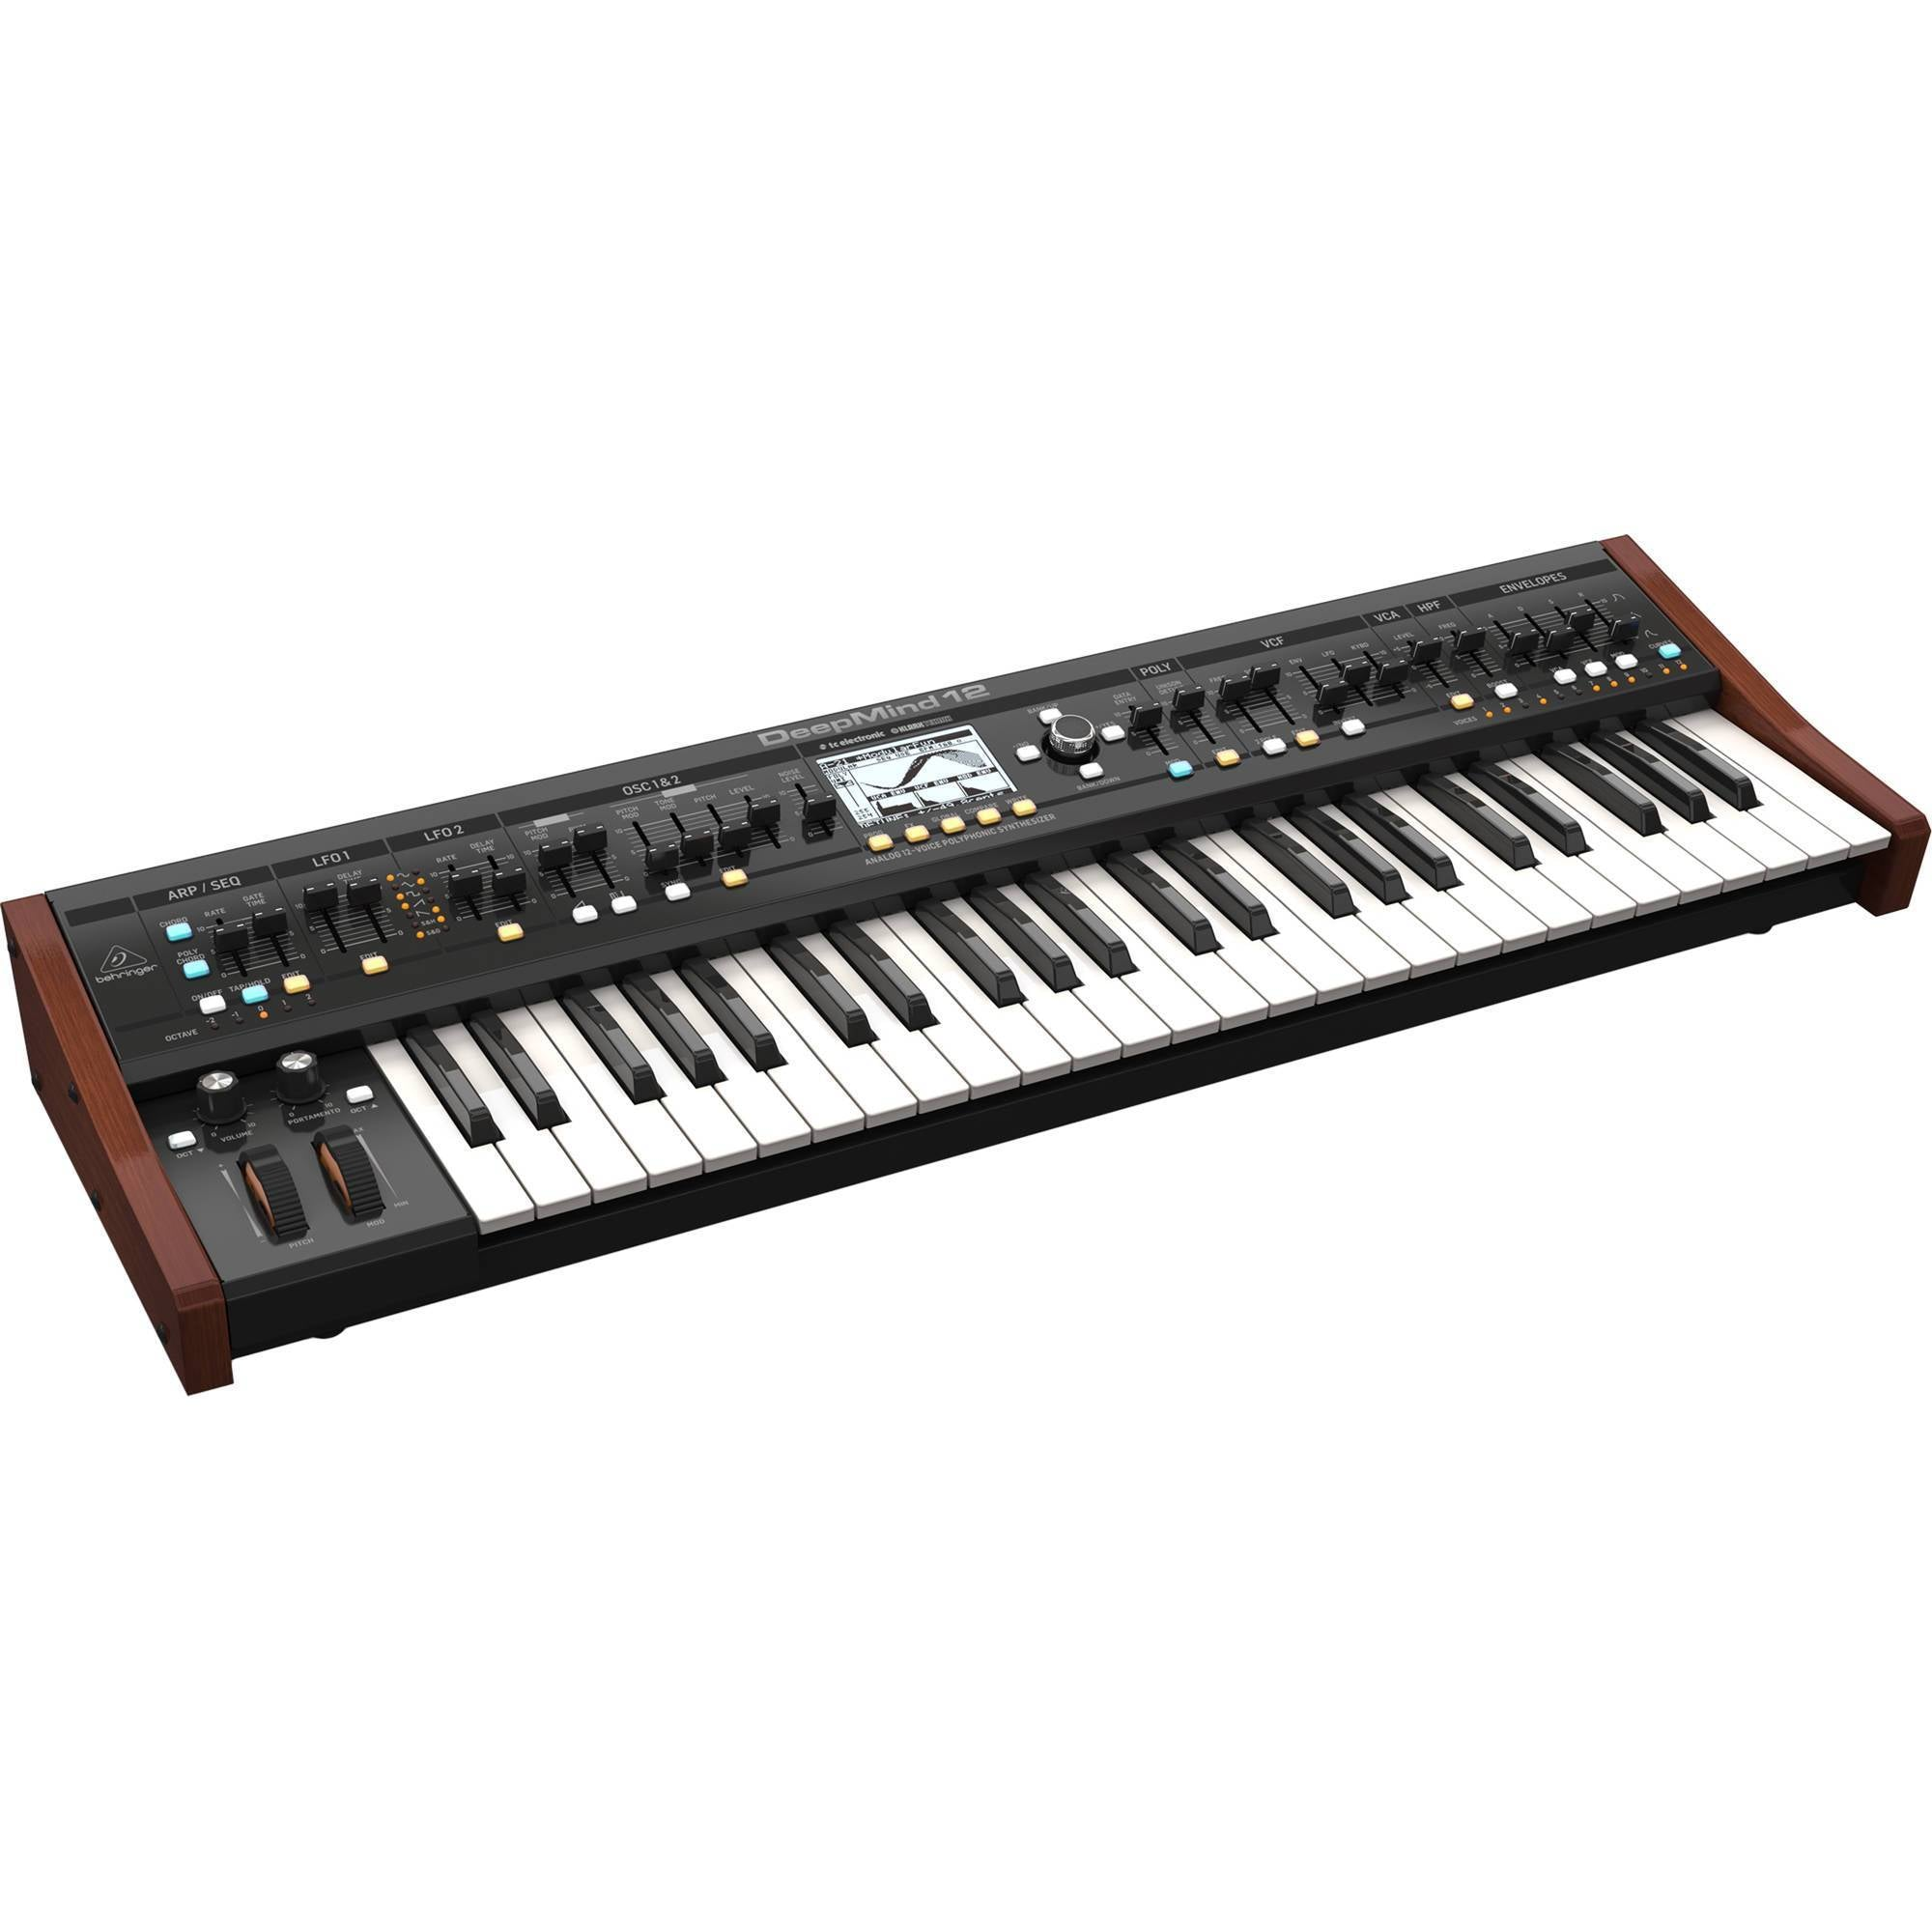 Behringer DeepMind 12 49-key 12V / Analog Synthesizer